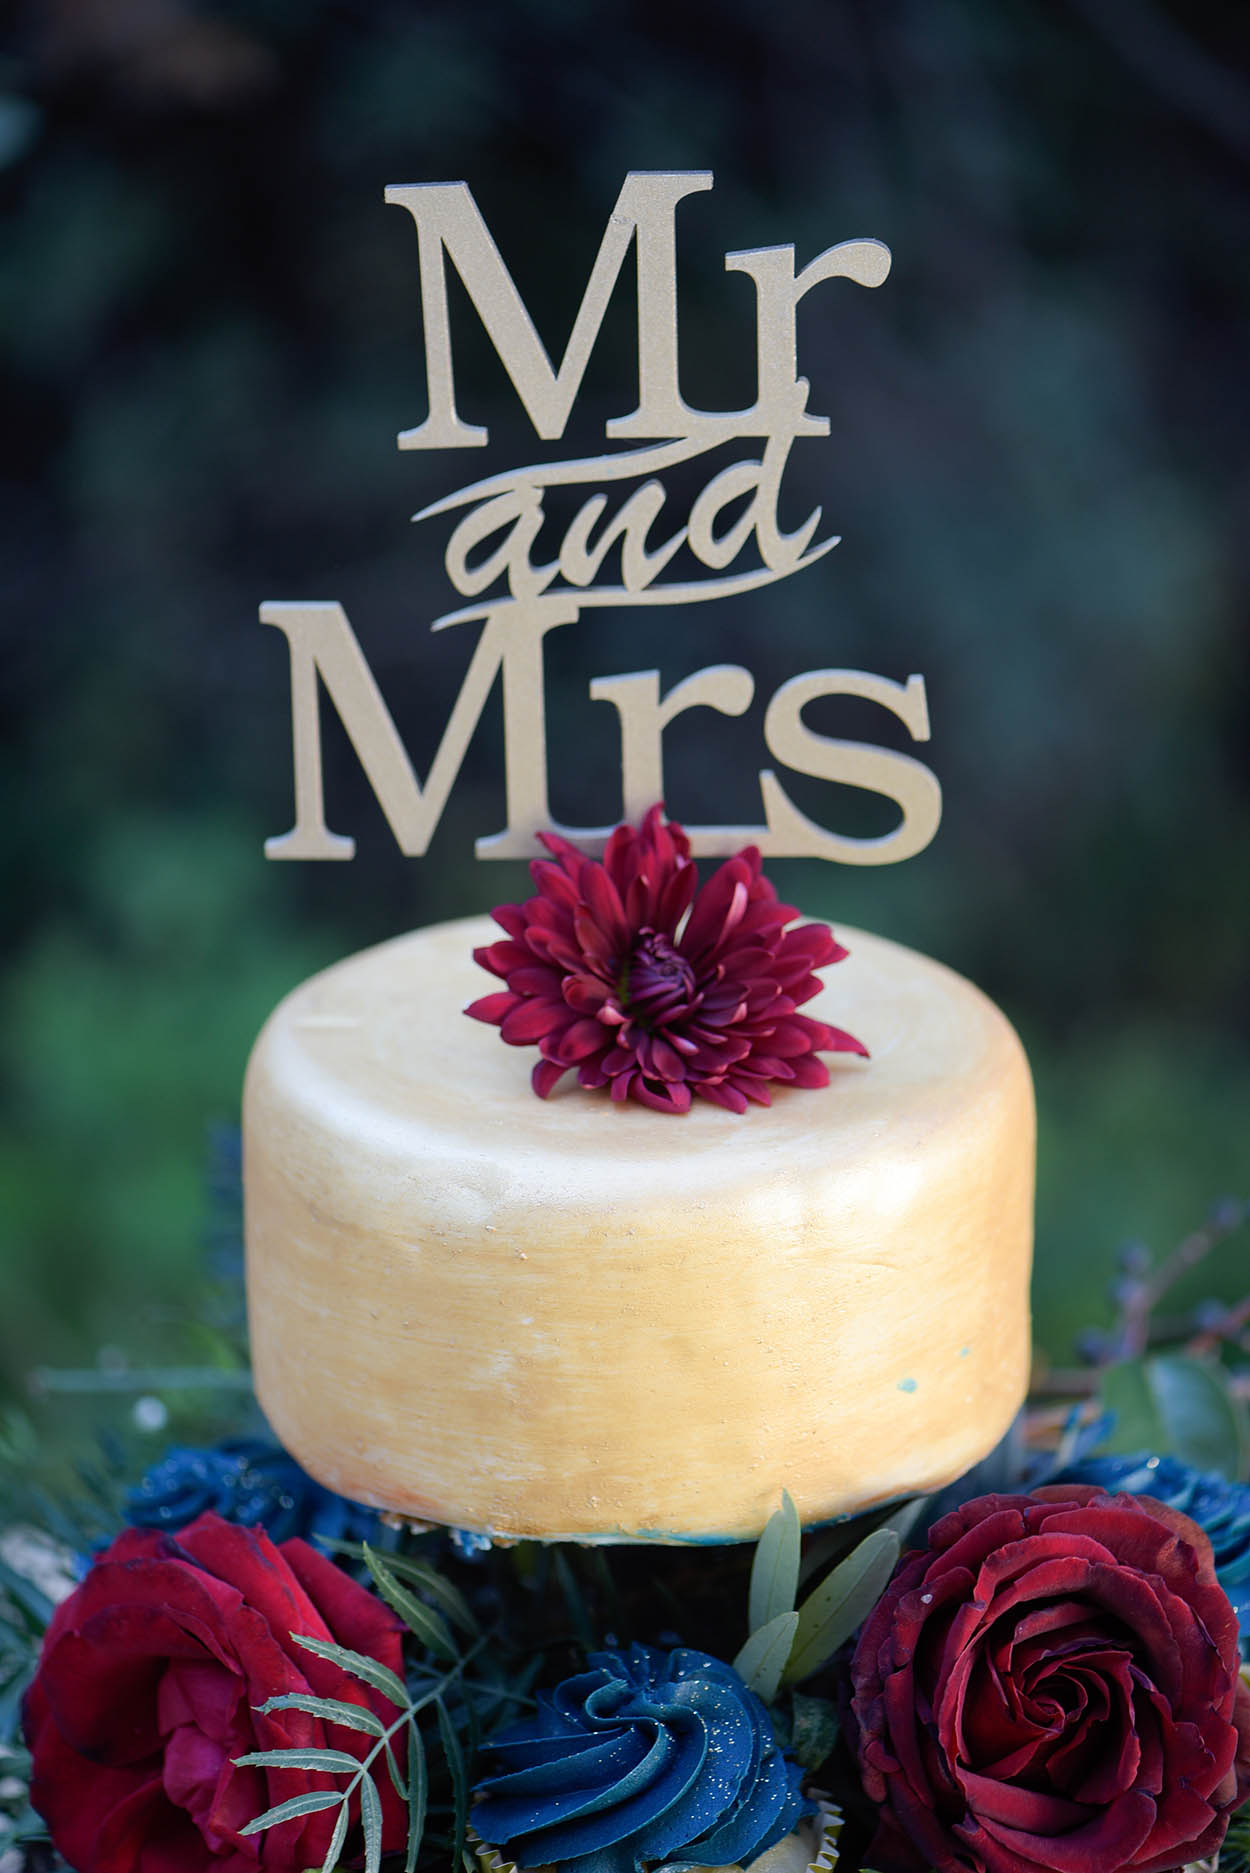 wedding photo by Mudboots at Monte Bello Estate Bloemfontein cake